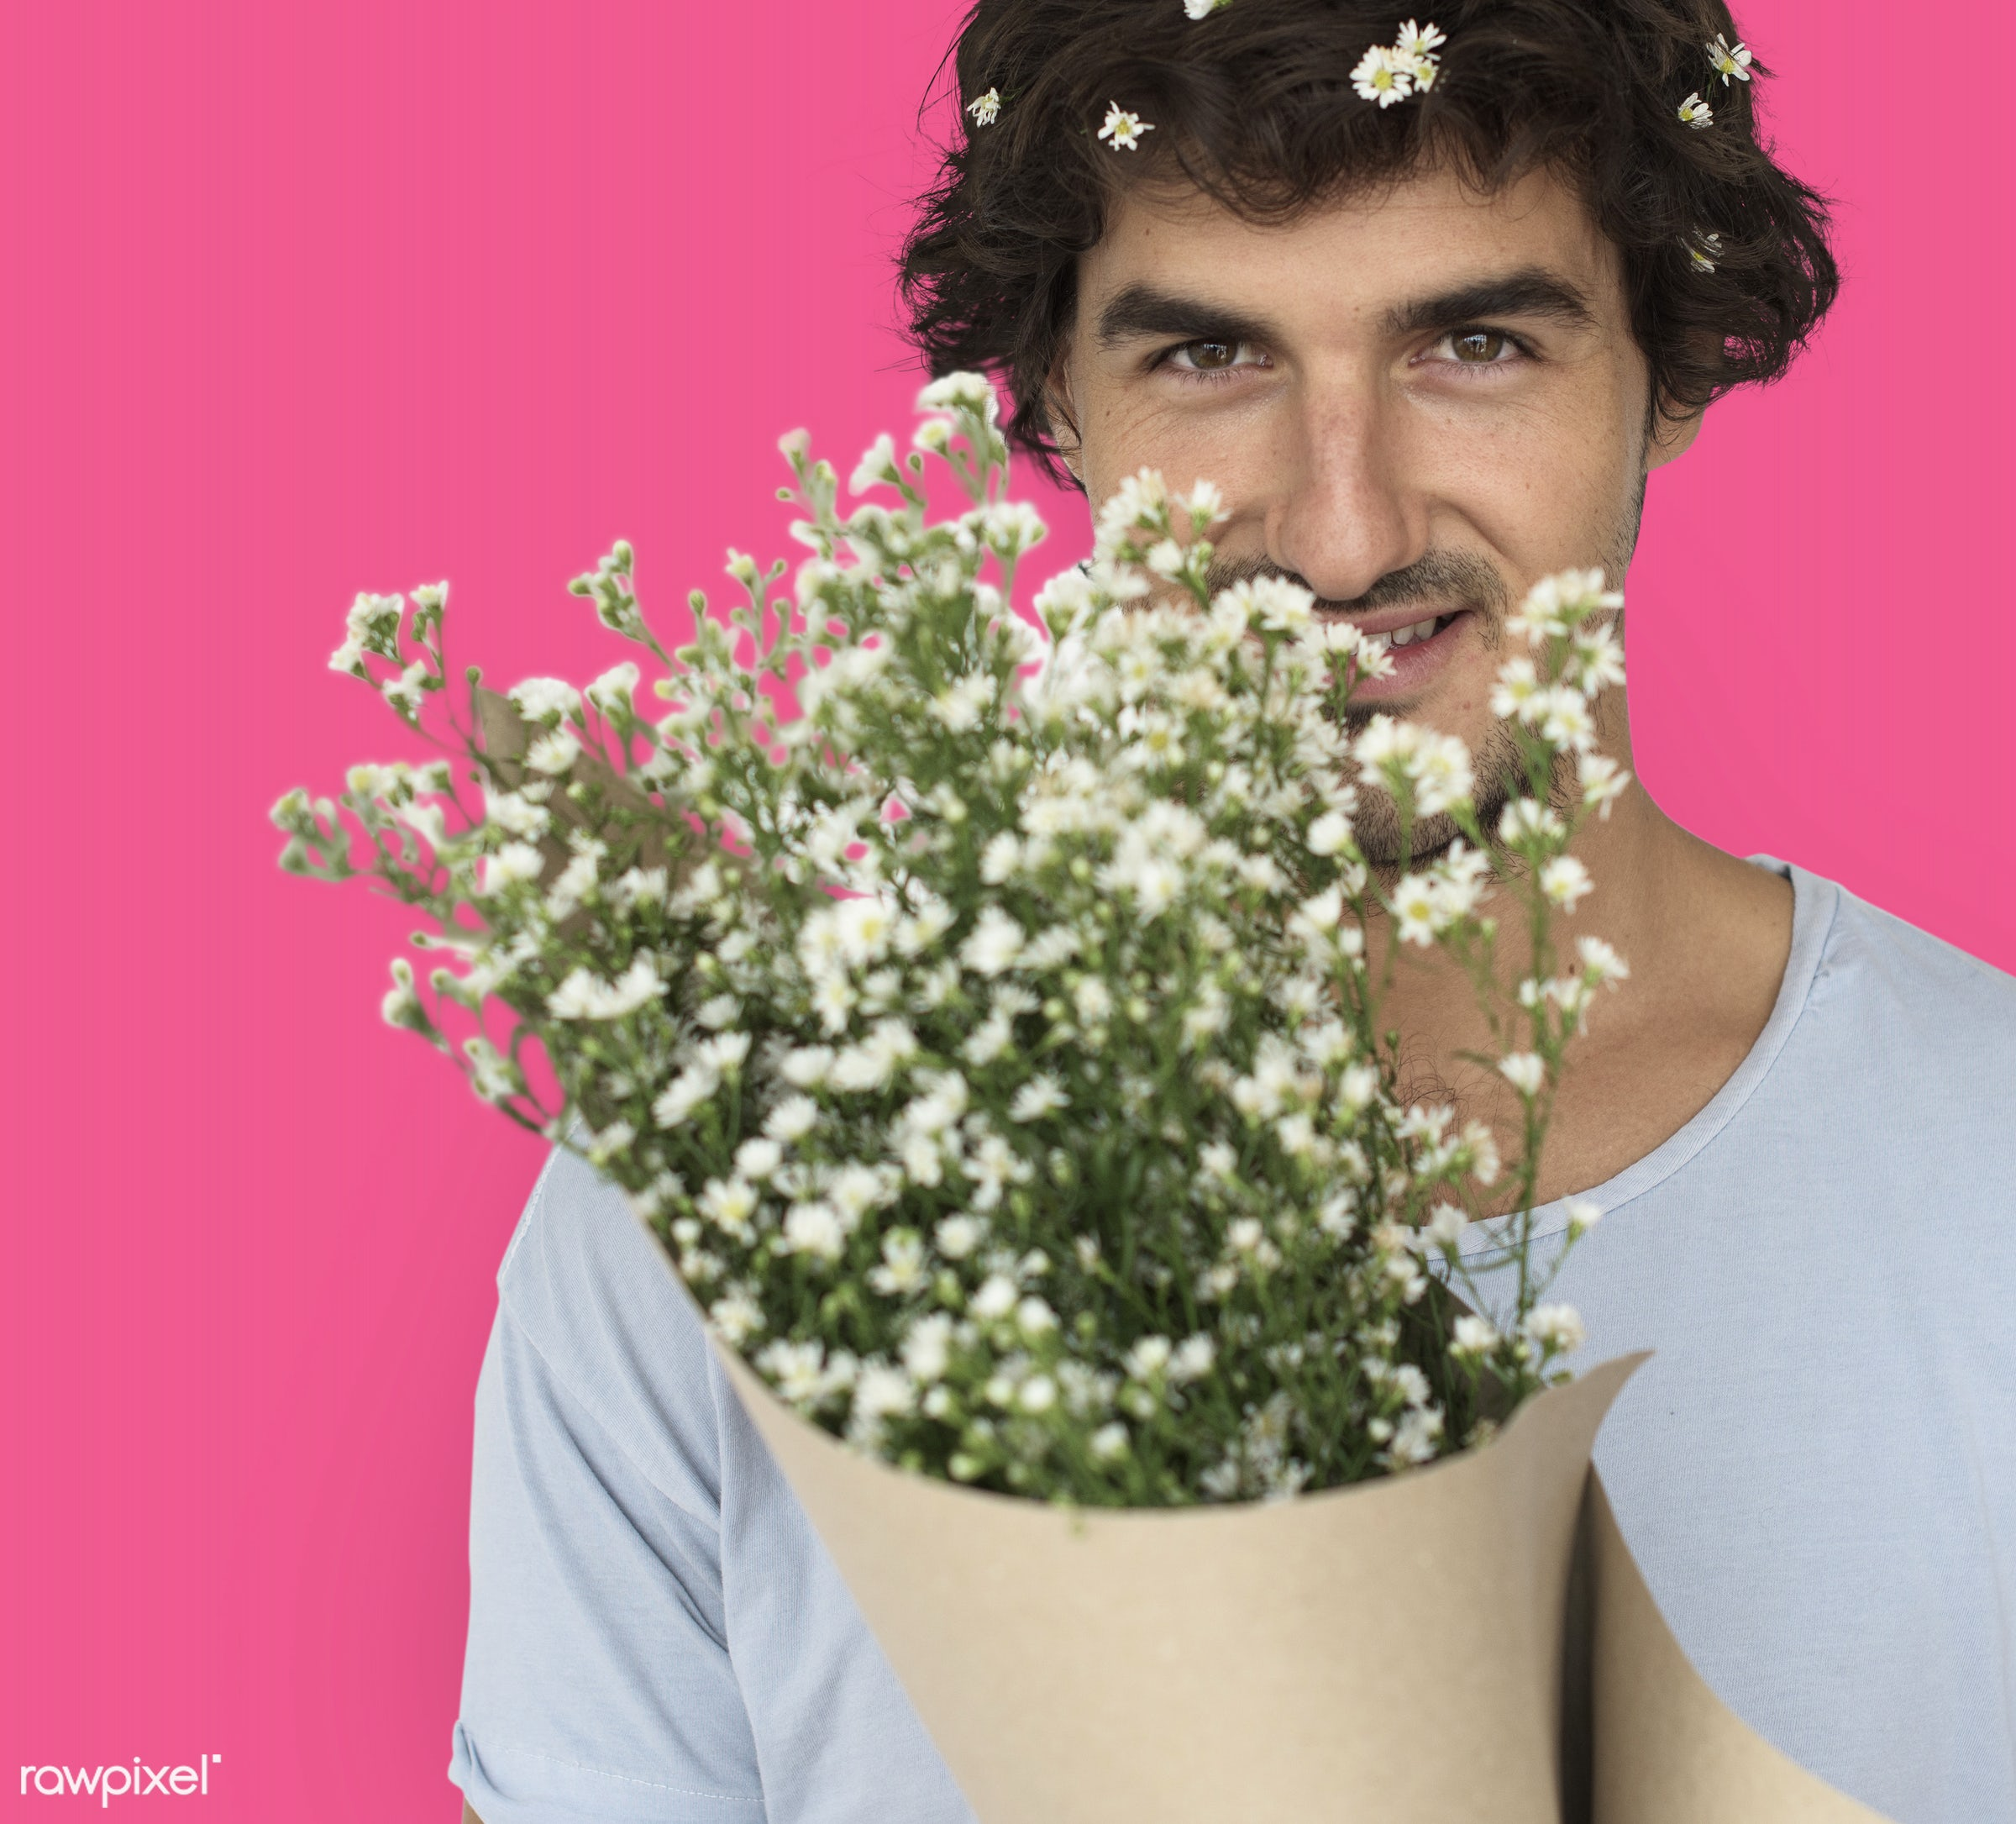 studio, expression, bouquet, person, people, pink, smile, cheerful, smiling, flower, isolated, happiness, portrait, emotion...